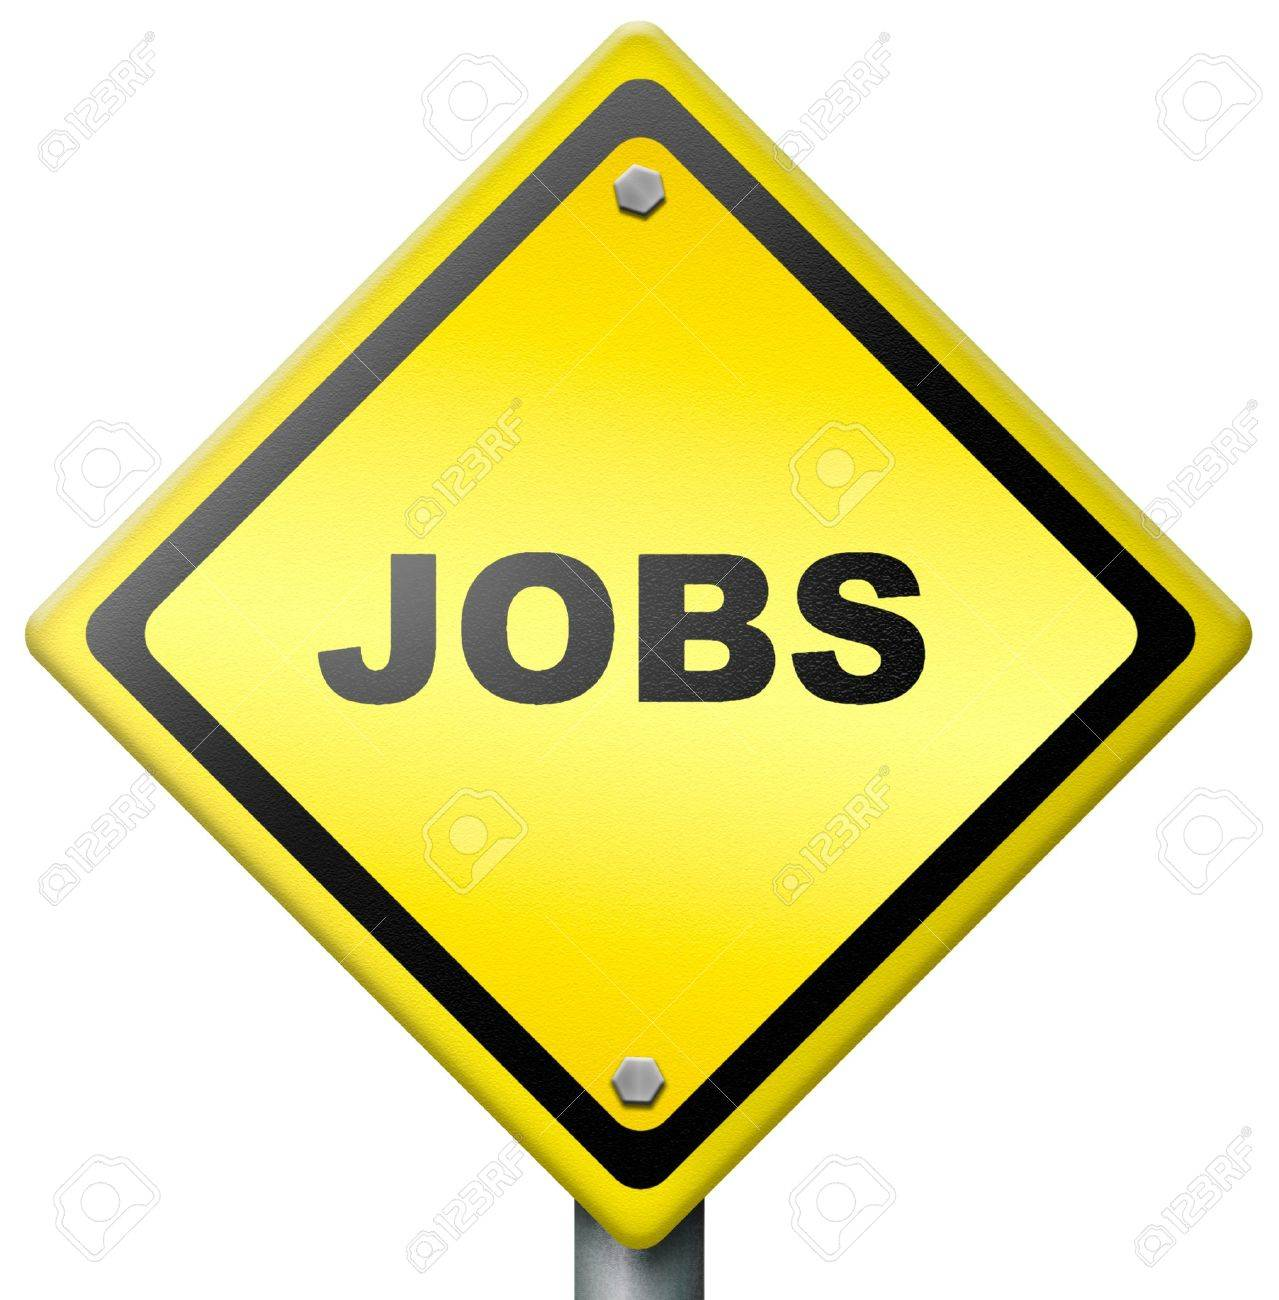 jobs ahead opportunity and warning for a career move or job stock photo jobs ahead opportunity and warning for a career move or job interview or ad diamond road sign in yellow hiring now in an advert button or icon